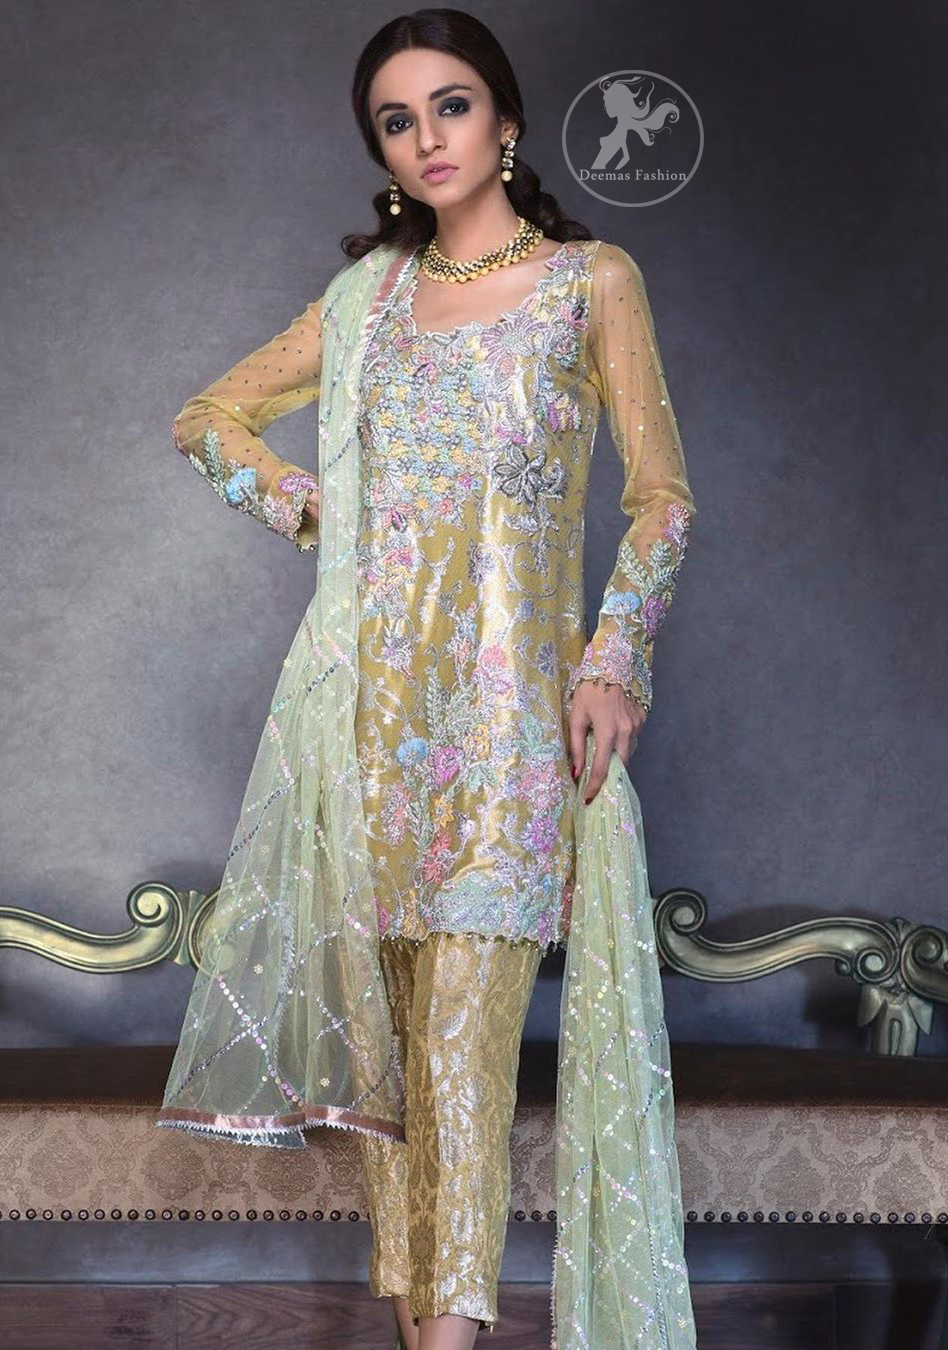 This super stunning shirt is made of rich floral embroidery which is further enhanced with colorful gota work. It is highlighted with gota work, sequins and pearls. The detailed scalloped border gives a perfect ending to this shirt. It comes with indian khaki trouser. It is coordinated with chiffon dupatta which is sprinkled with sequins all over it.